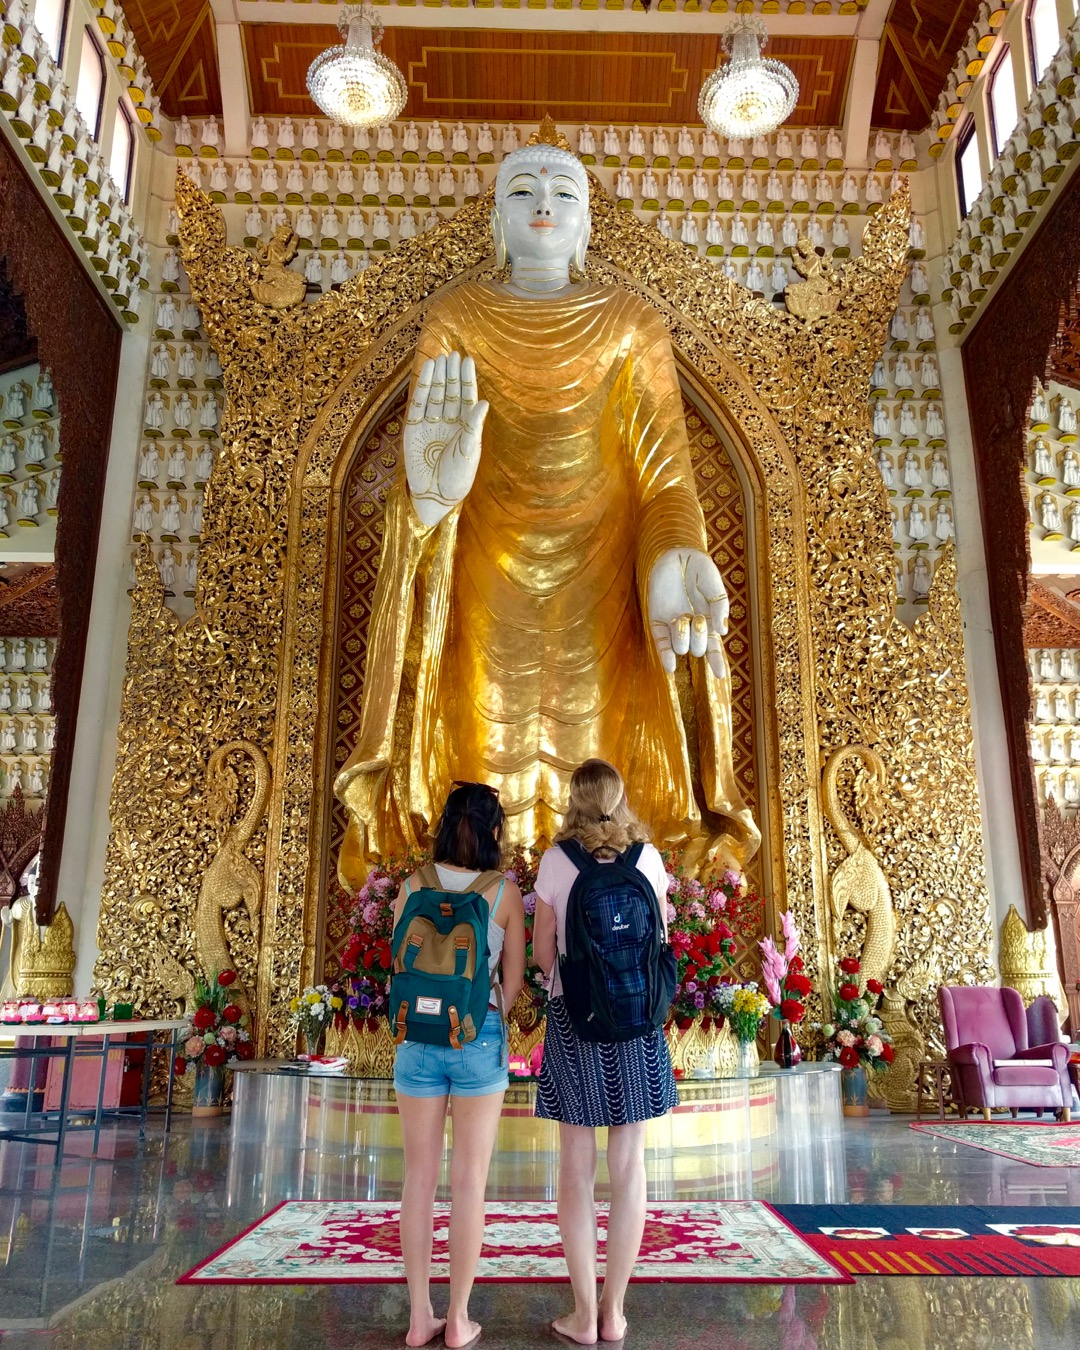 Admiring the golden Standing Buddha in Dharmikarama Burmese Temple, in Penang